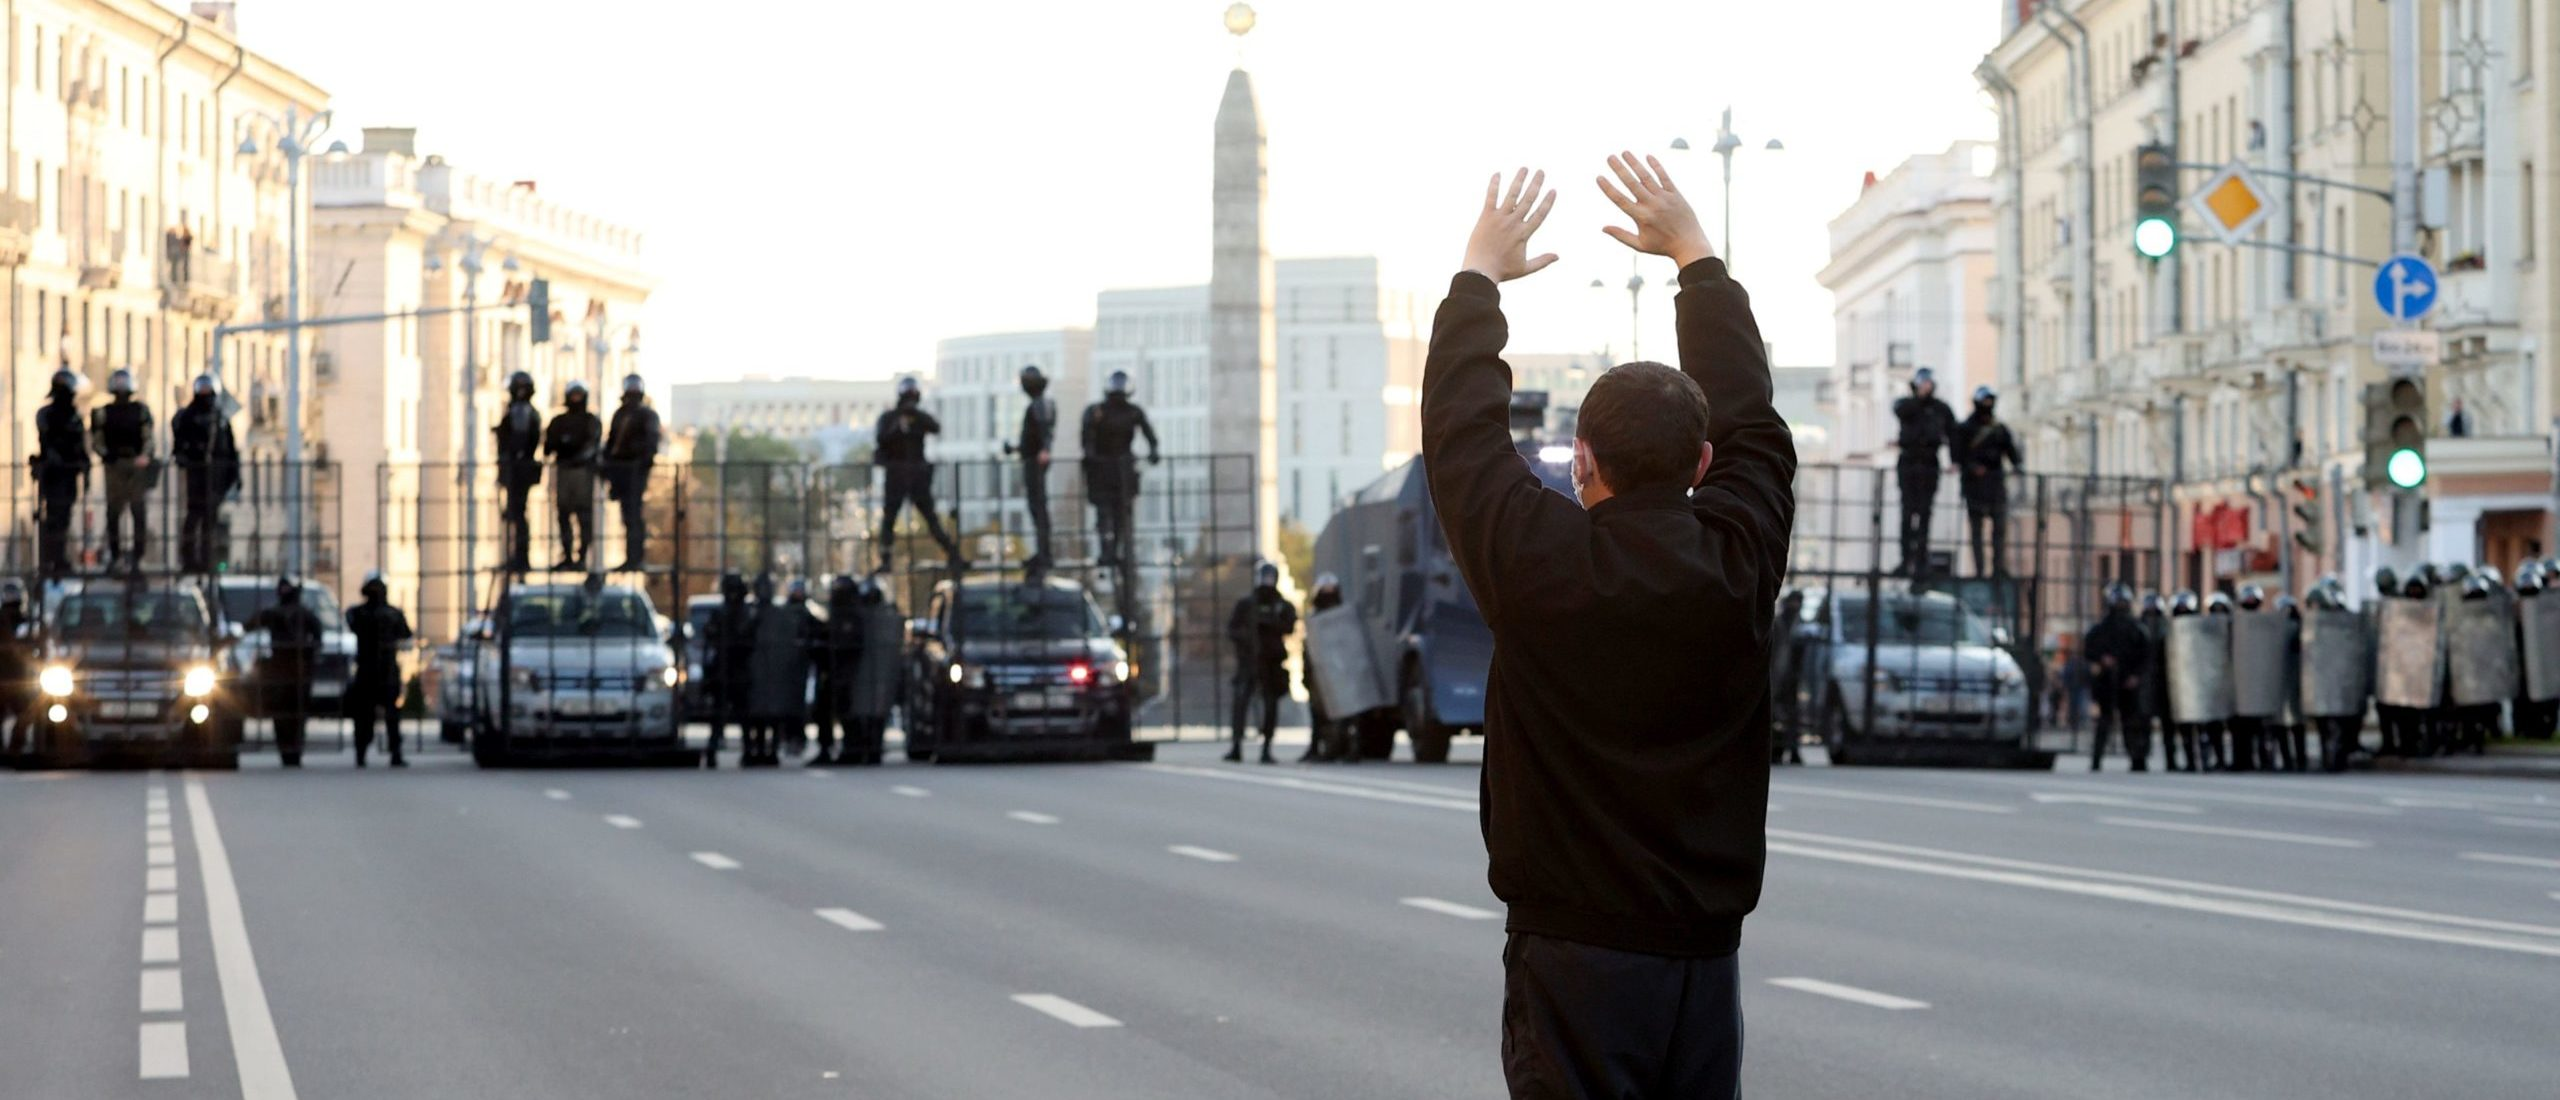 A man gestures as he stands in front of law enforcement officers blocking the road during a demonstration called by opposition movement for an end to the regime of authoritarian leader in Minsk on September 20, 2020. - Belarus President Alexander Lukashenko, who has ruled the ex-Soviet state for 26 years, claimed to have defeated opposition leader Svetlana Tikhanovskaya with 80 percent of the vote in the August 9, elections. (Photo by - / AFP) (Photo by -/AFP via Getty Images)